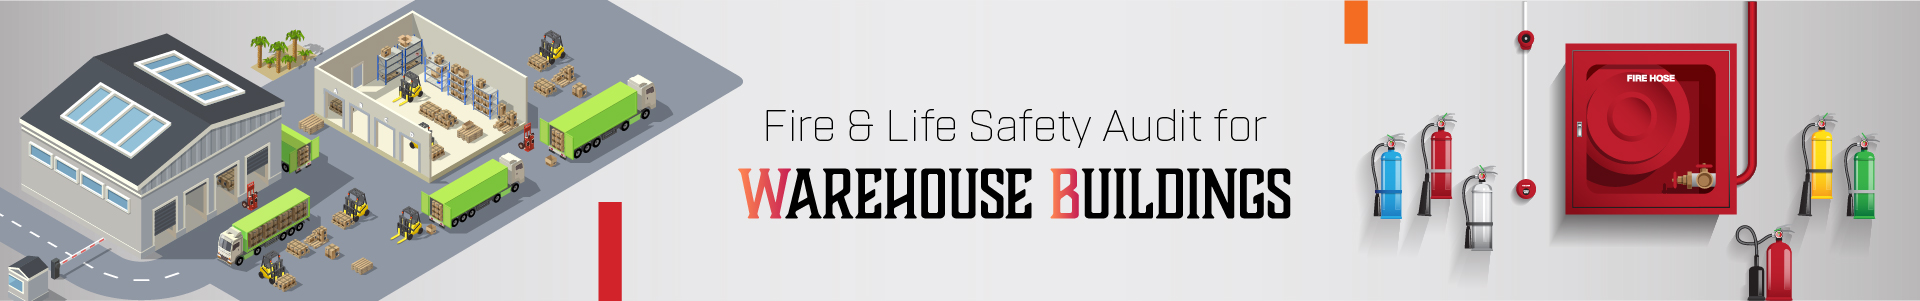 fire-and-life-safety-audit-for-warehouse-buildings